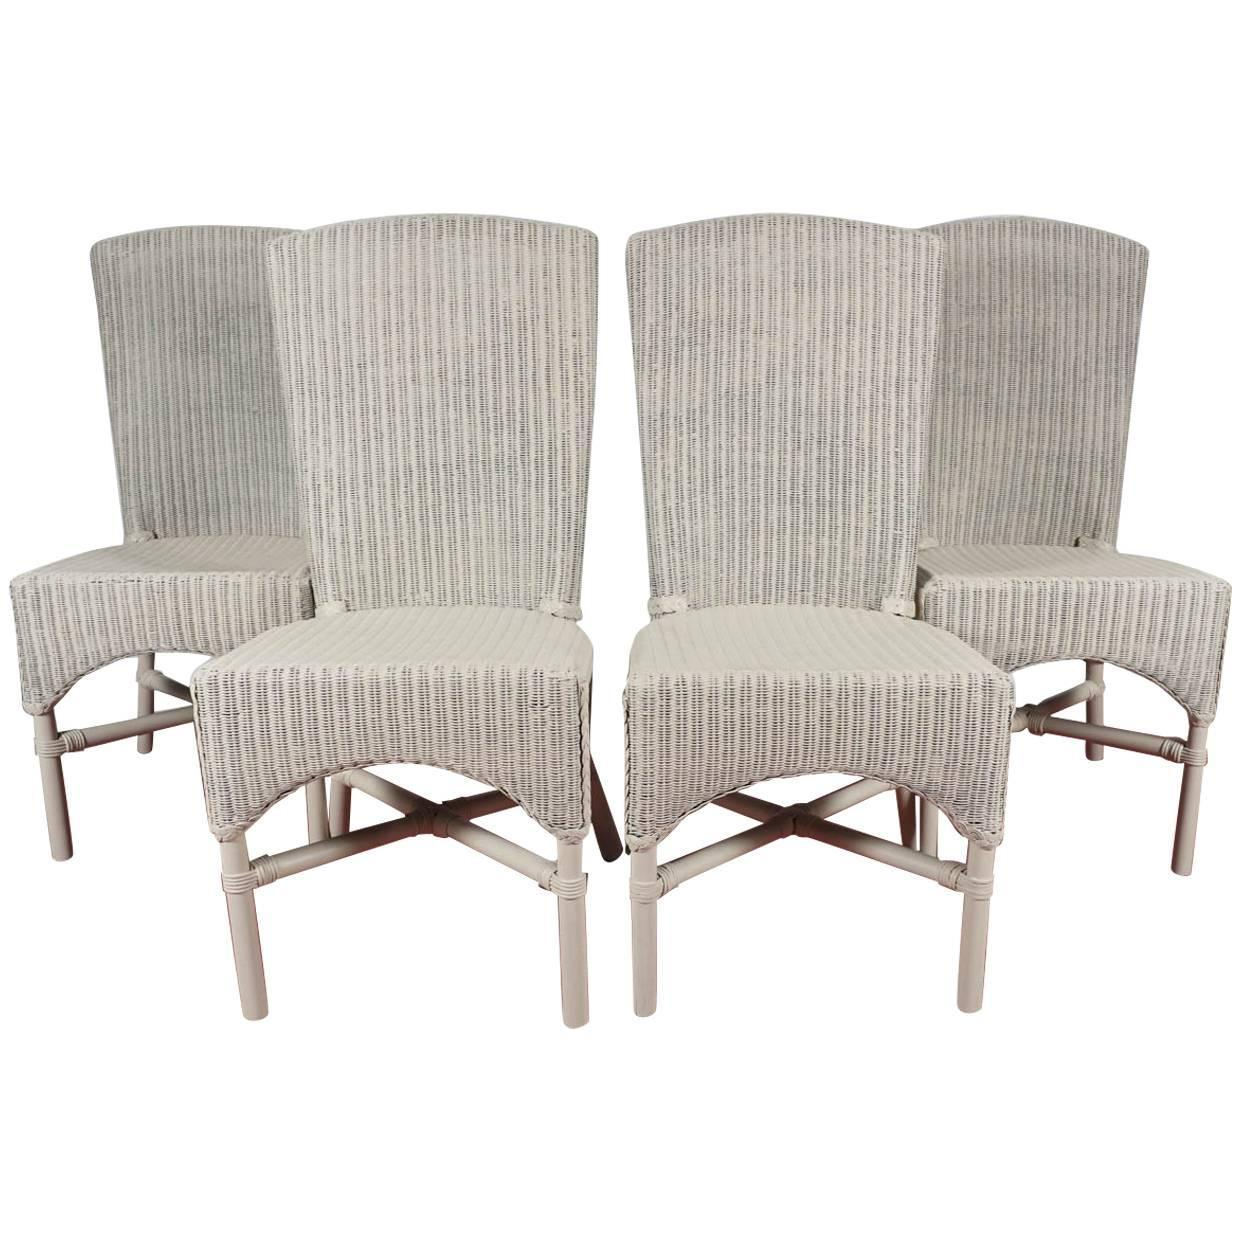 Beau Six Vintage Lloyd Loom Wicker Dining Chairs At 1stdibs